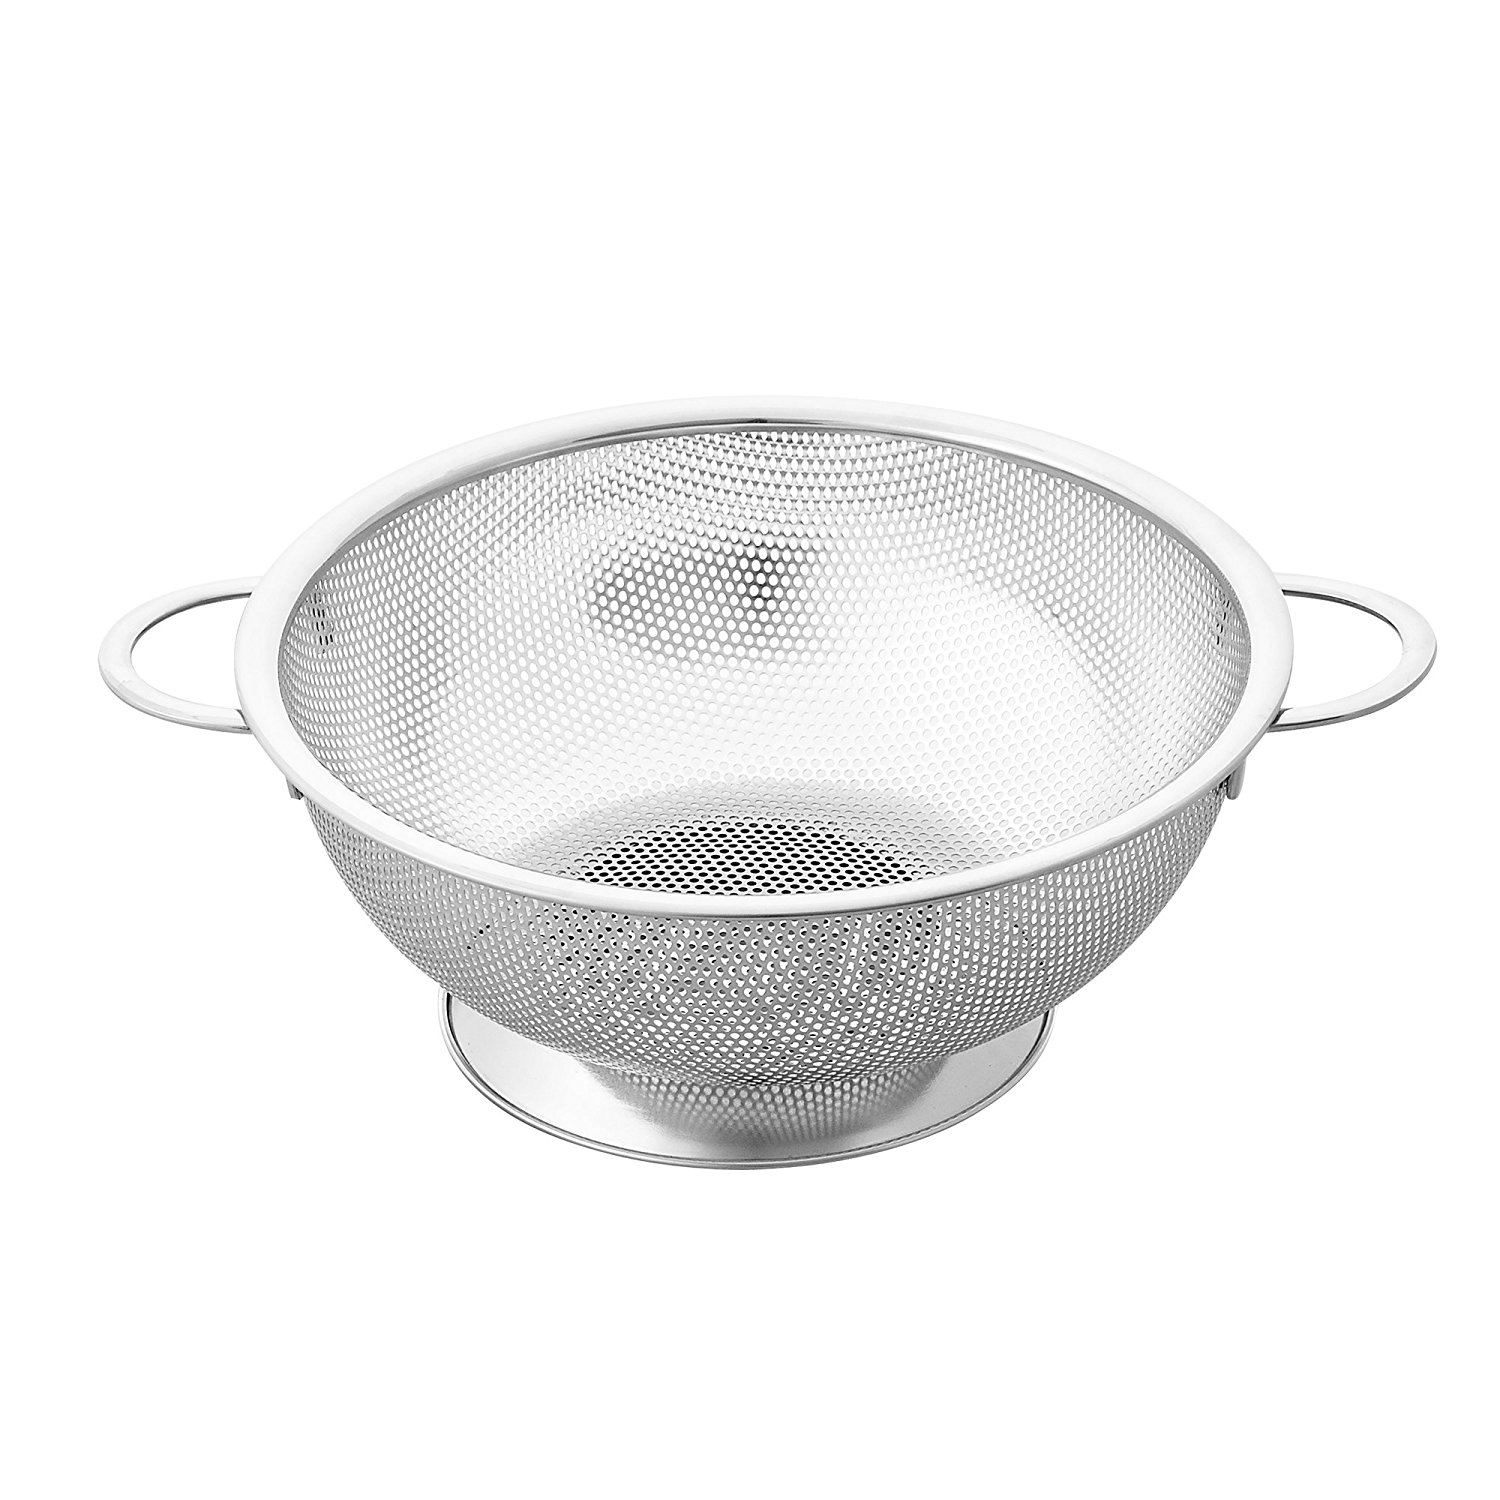 Cook N Home Stainless Steel 5-qt. Colander by Neway International Inc